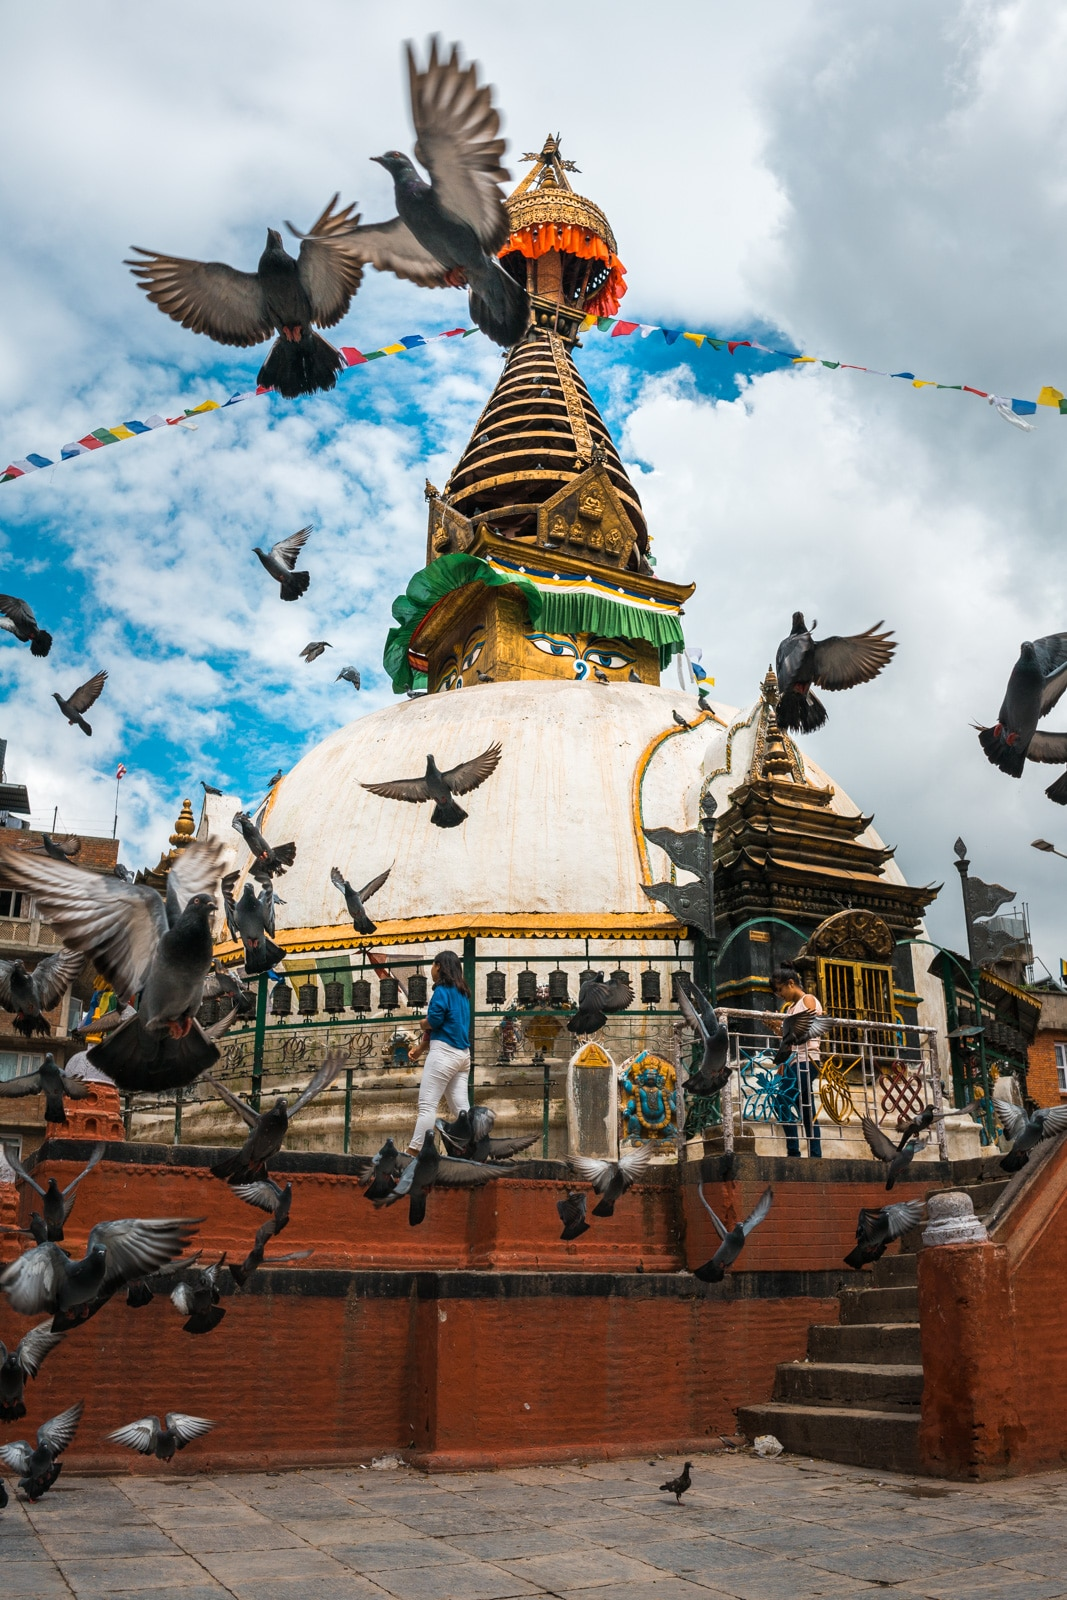 Flocks of birds flying before one of many scenic small stupas found throughout Kathmandu, Nepal.